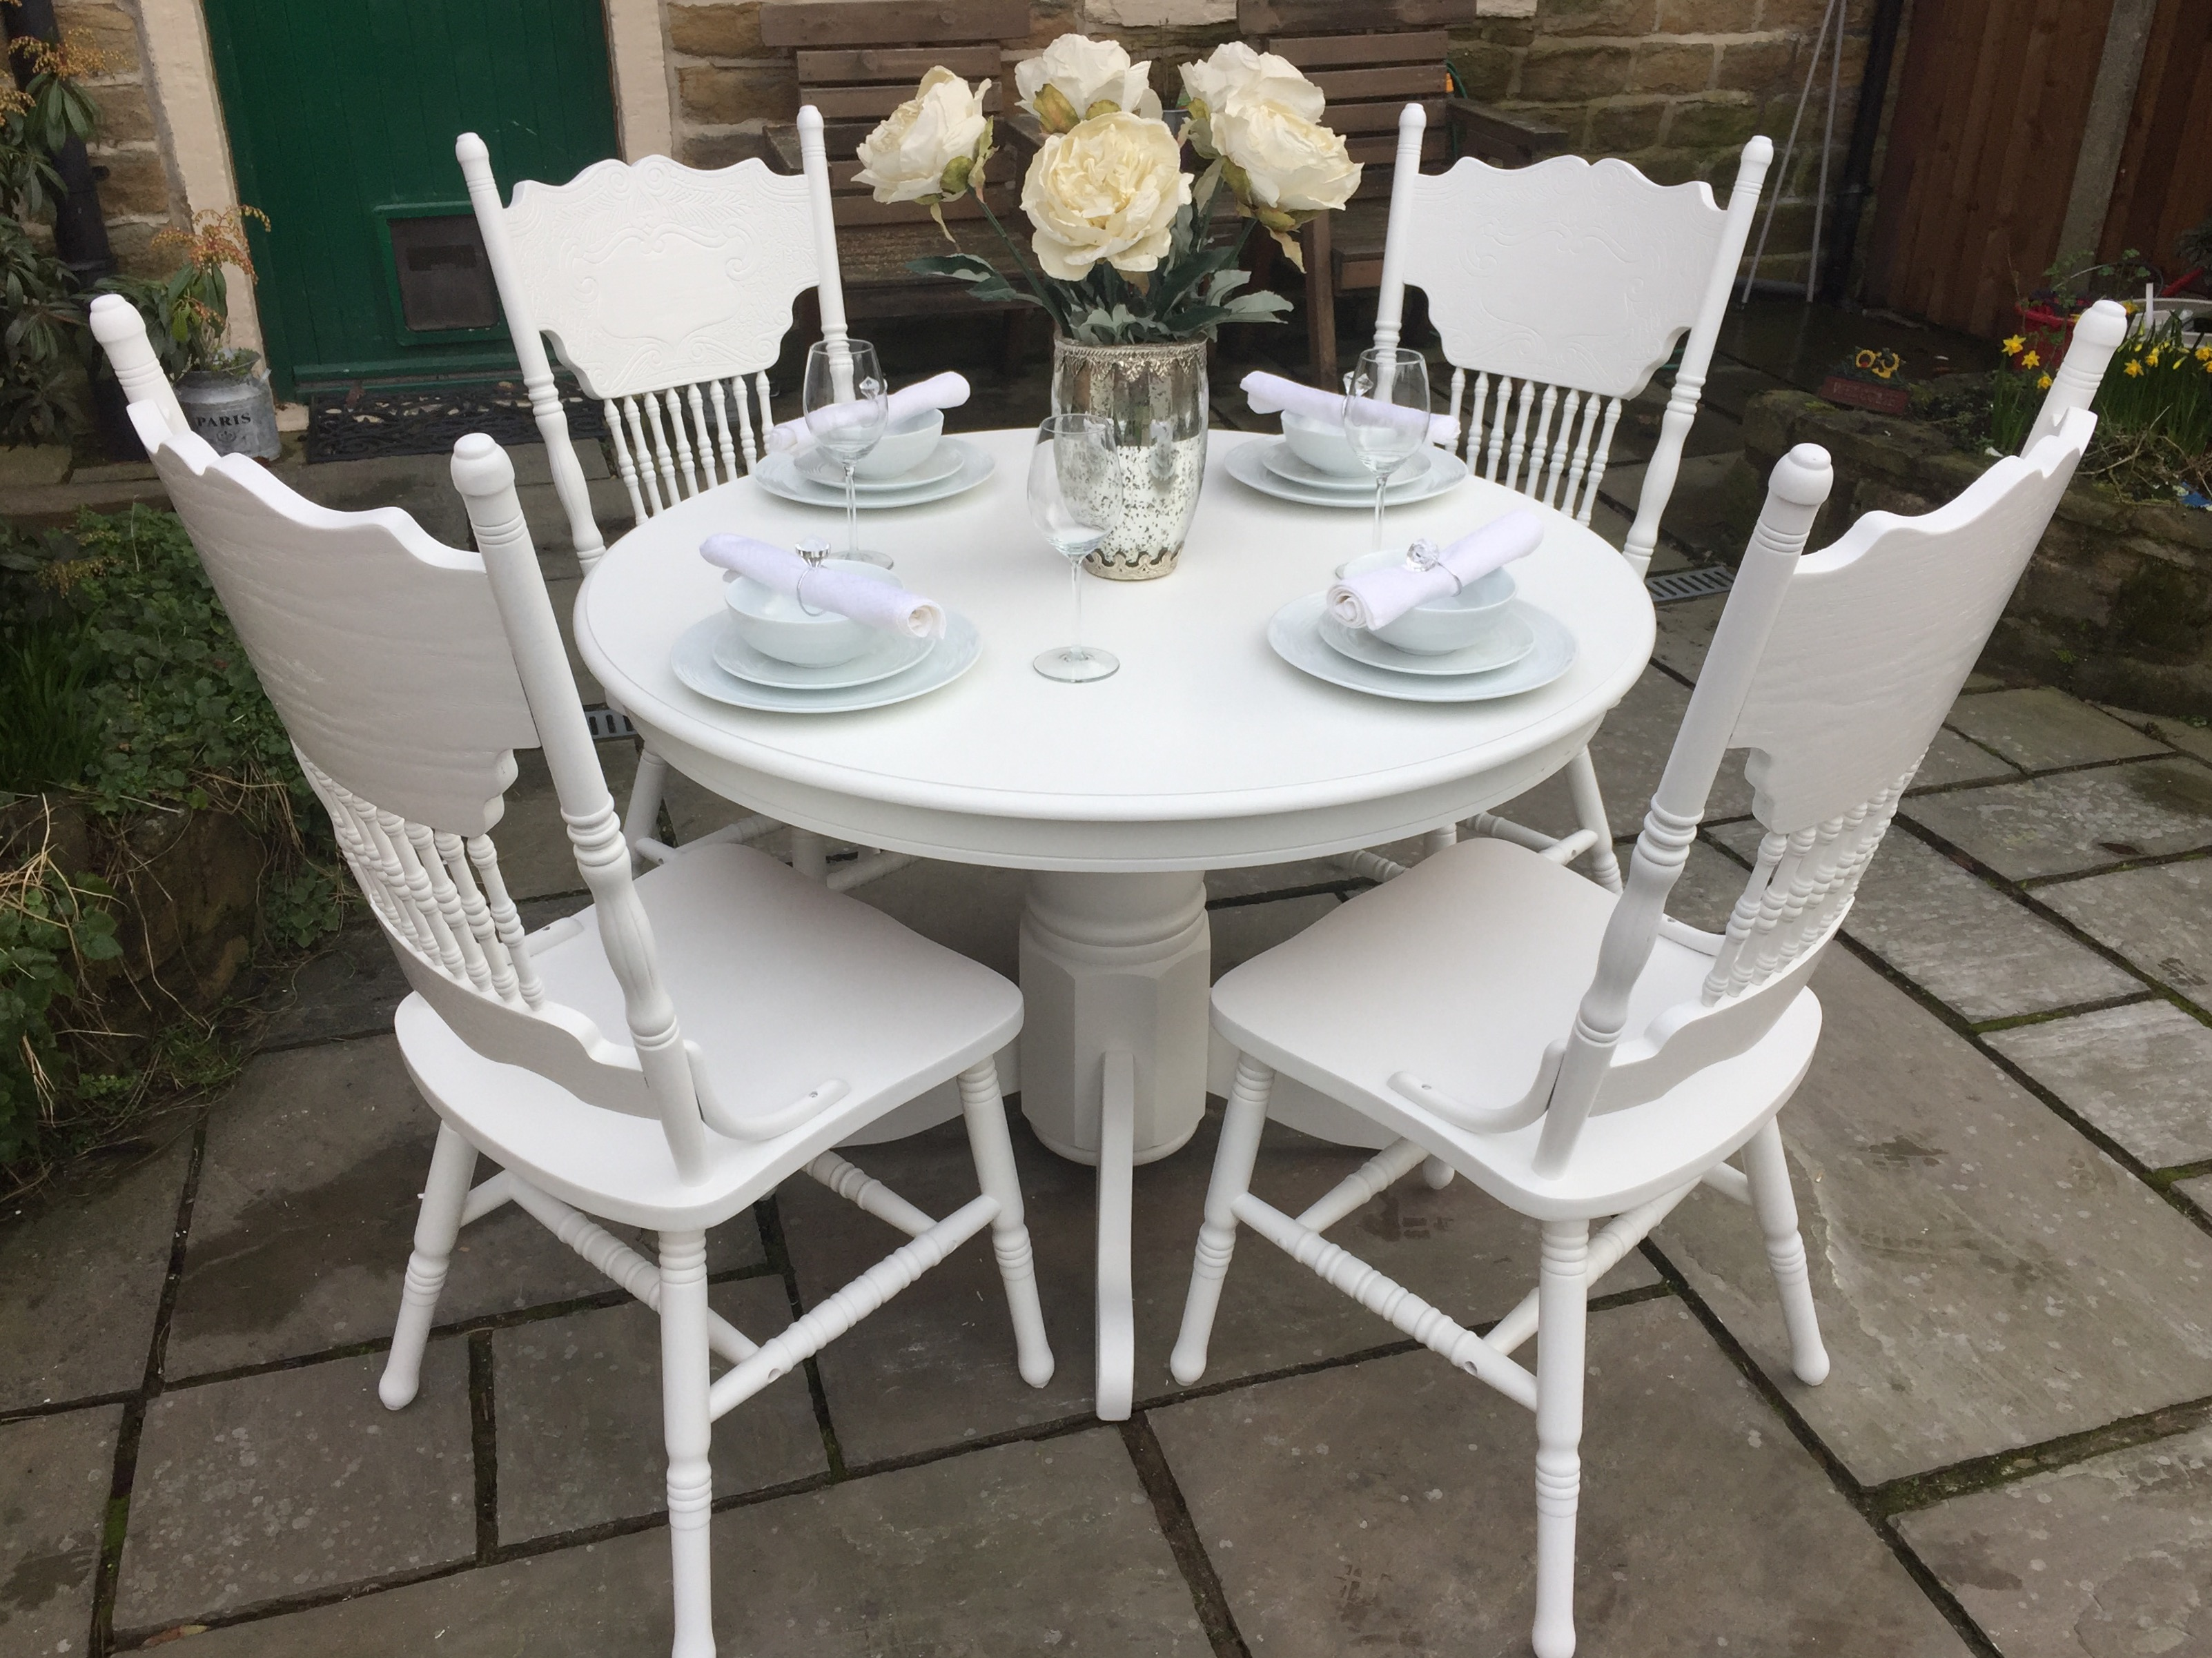 Stunning Vintage Dining Table & 4 Ornate Chairs